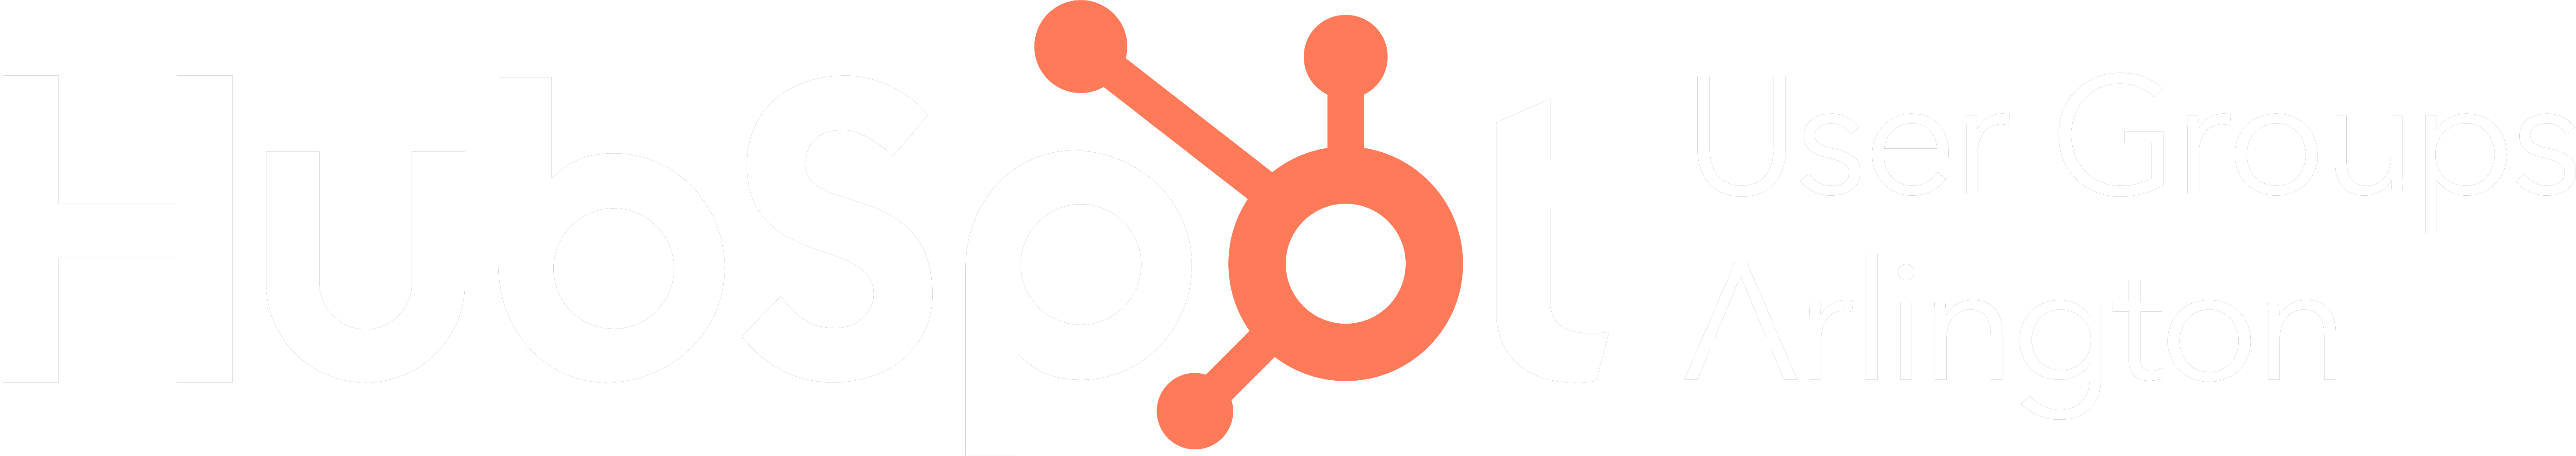 HubSpot_User_Group_logo-forDarkBGs.png